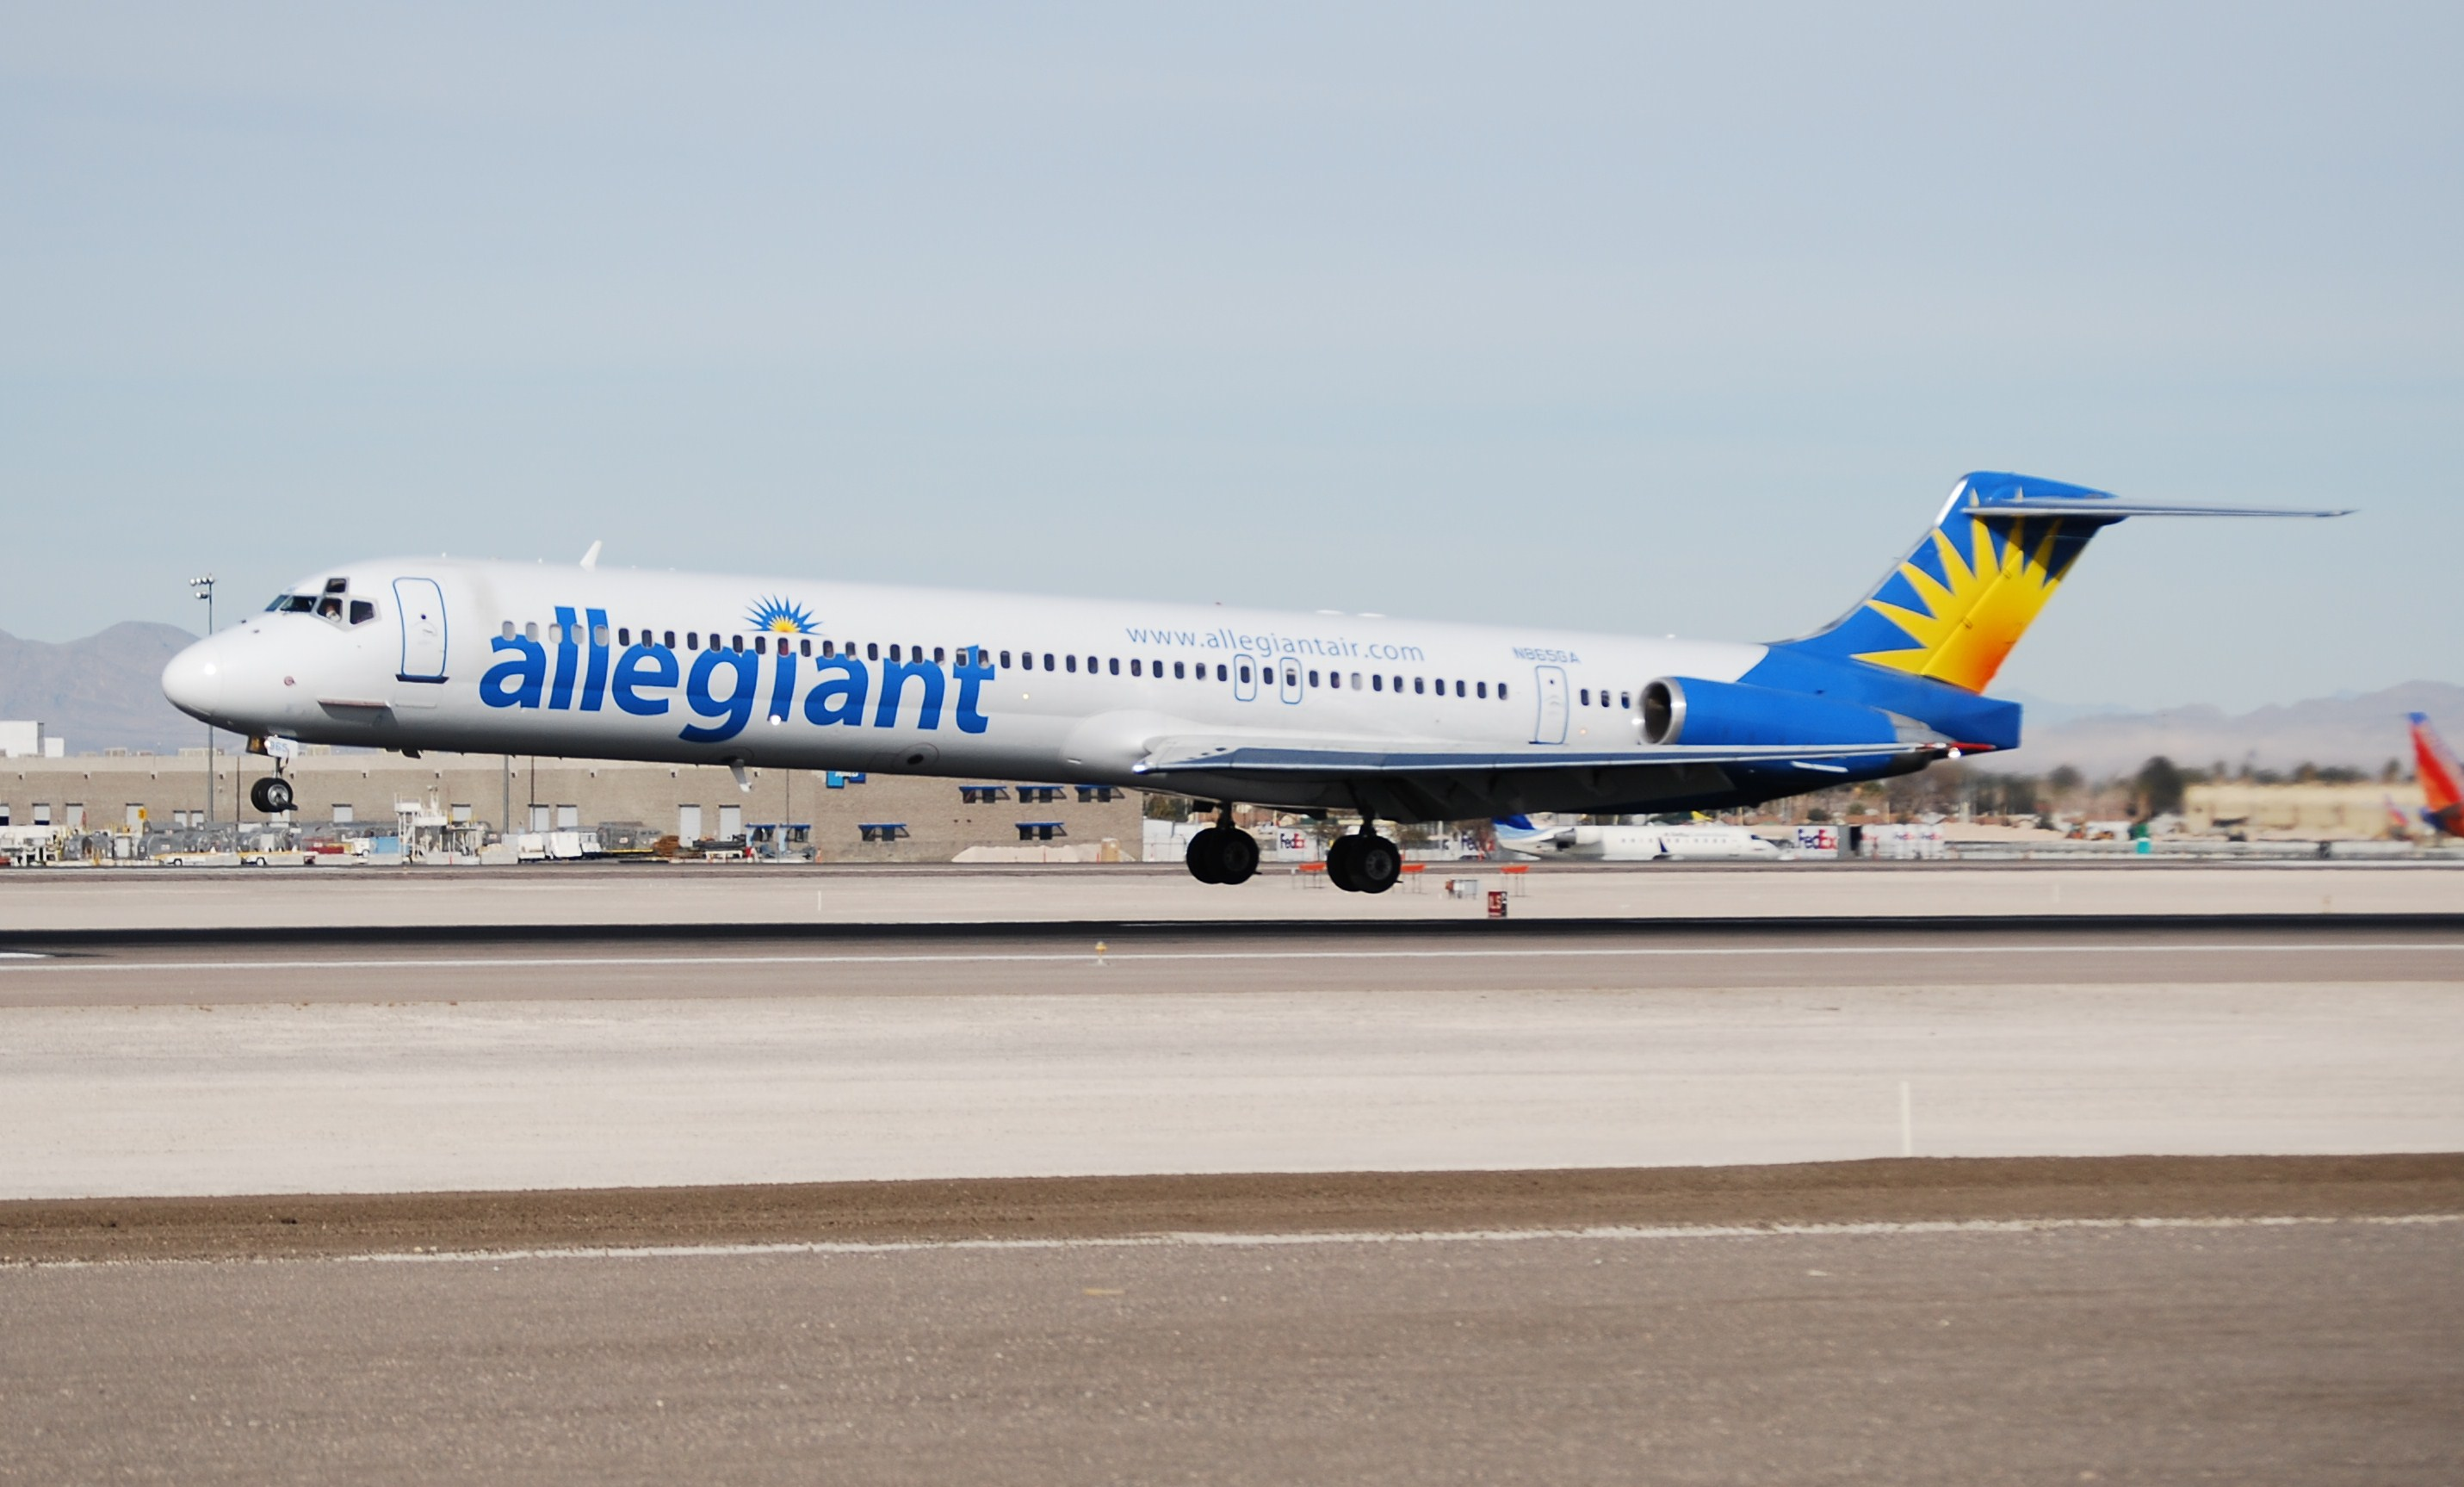 Allegiant Air (usually shortened to Allegiant and stylized as allegiant) is an American low-cost airline that operates scheduled and charter flights. The 9th largest commercial airline in the US, it is wholly owned by Allegiant Travel Company.